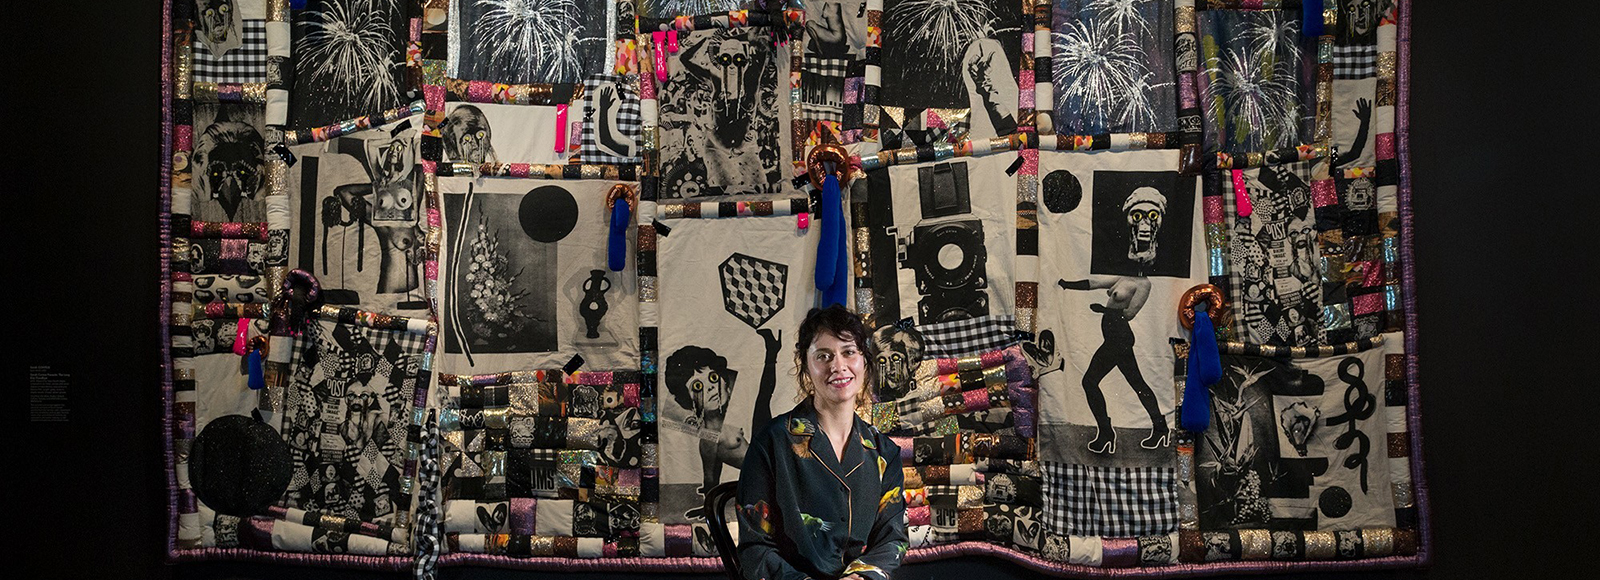 UNSW Art & Design graduate and Sydney-based emerging artist, Sarah Contos has won the inaugural $100,000 Ramsay Art Prize for her 21st century quilt